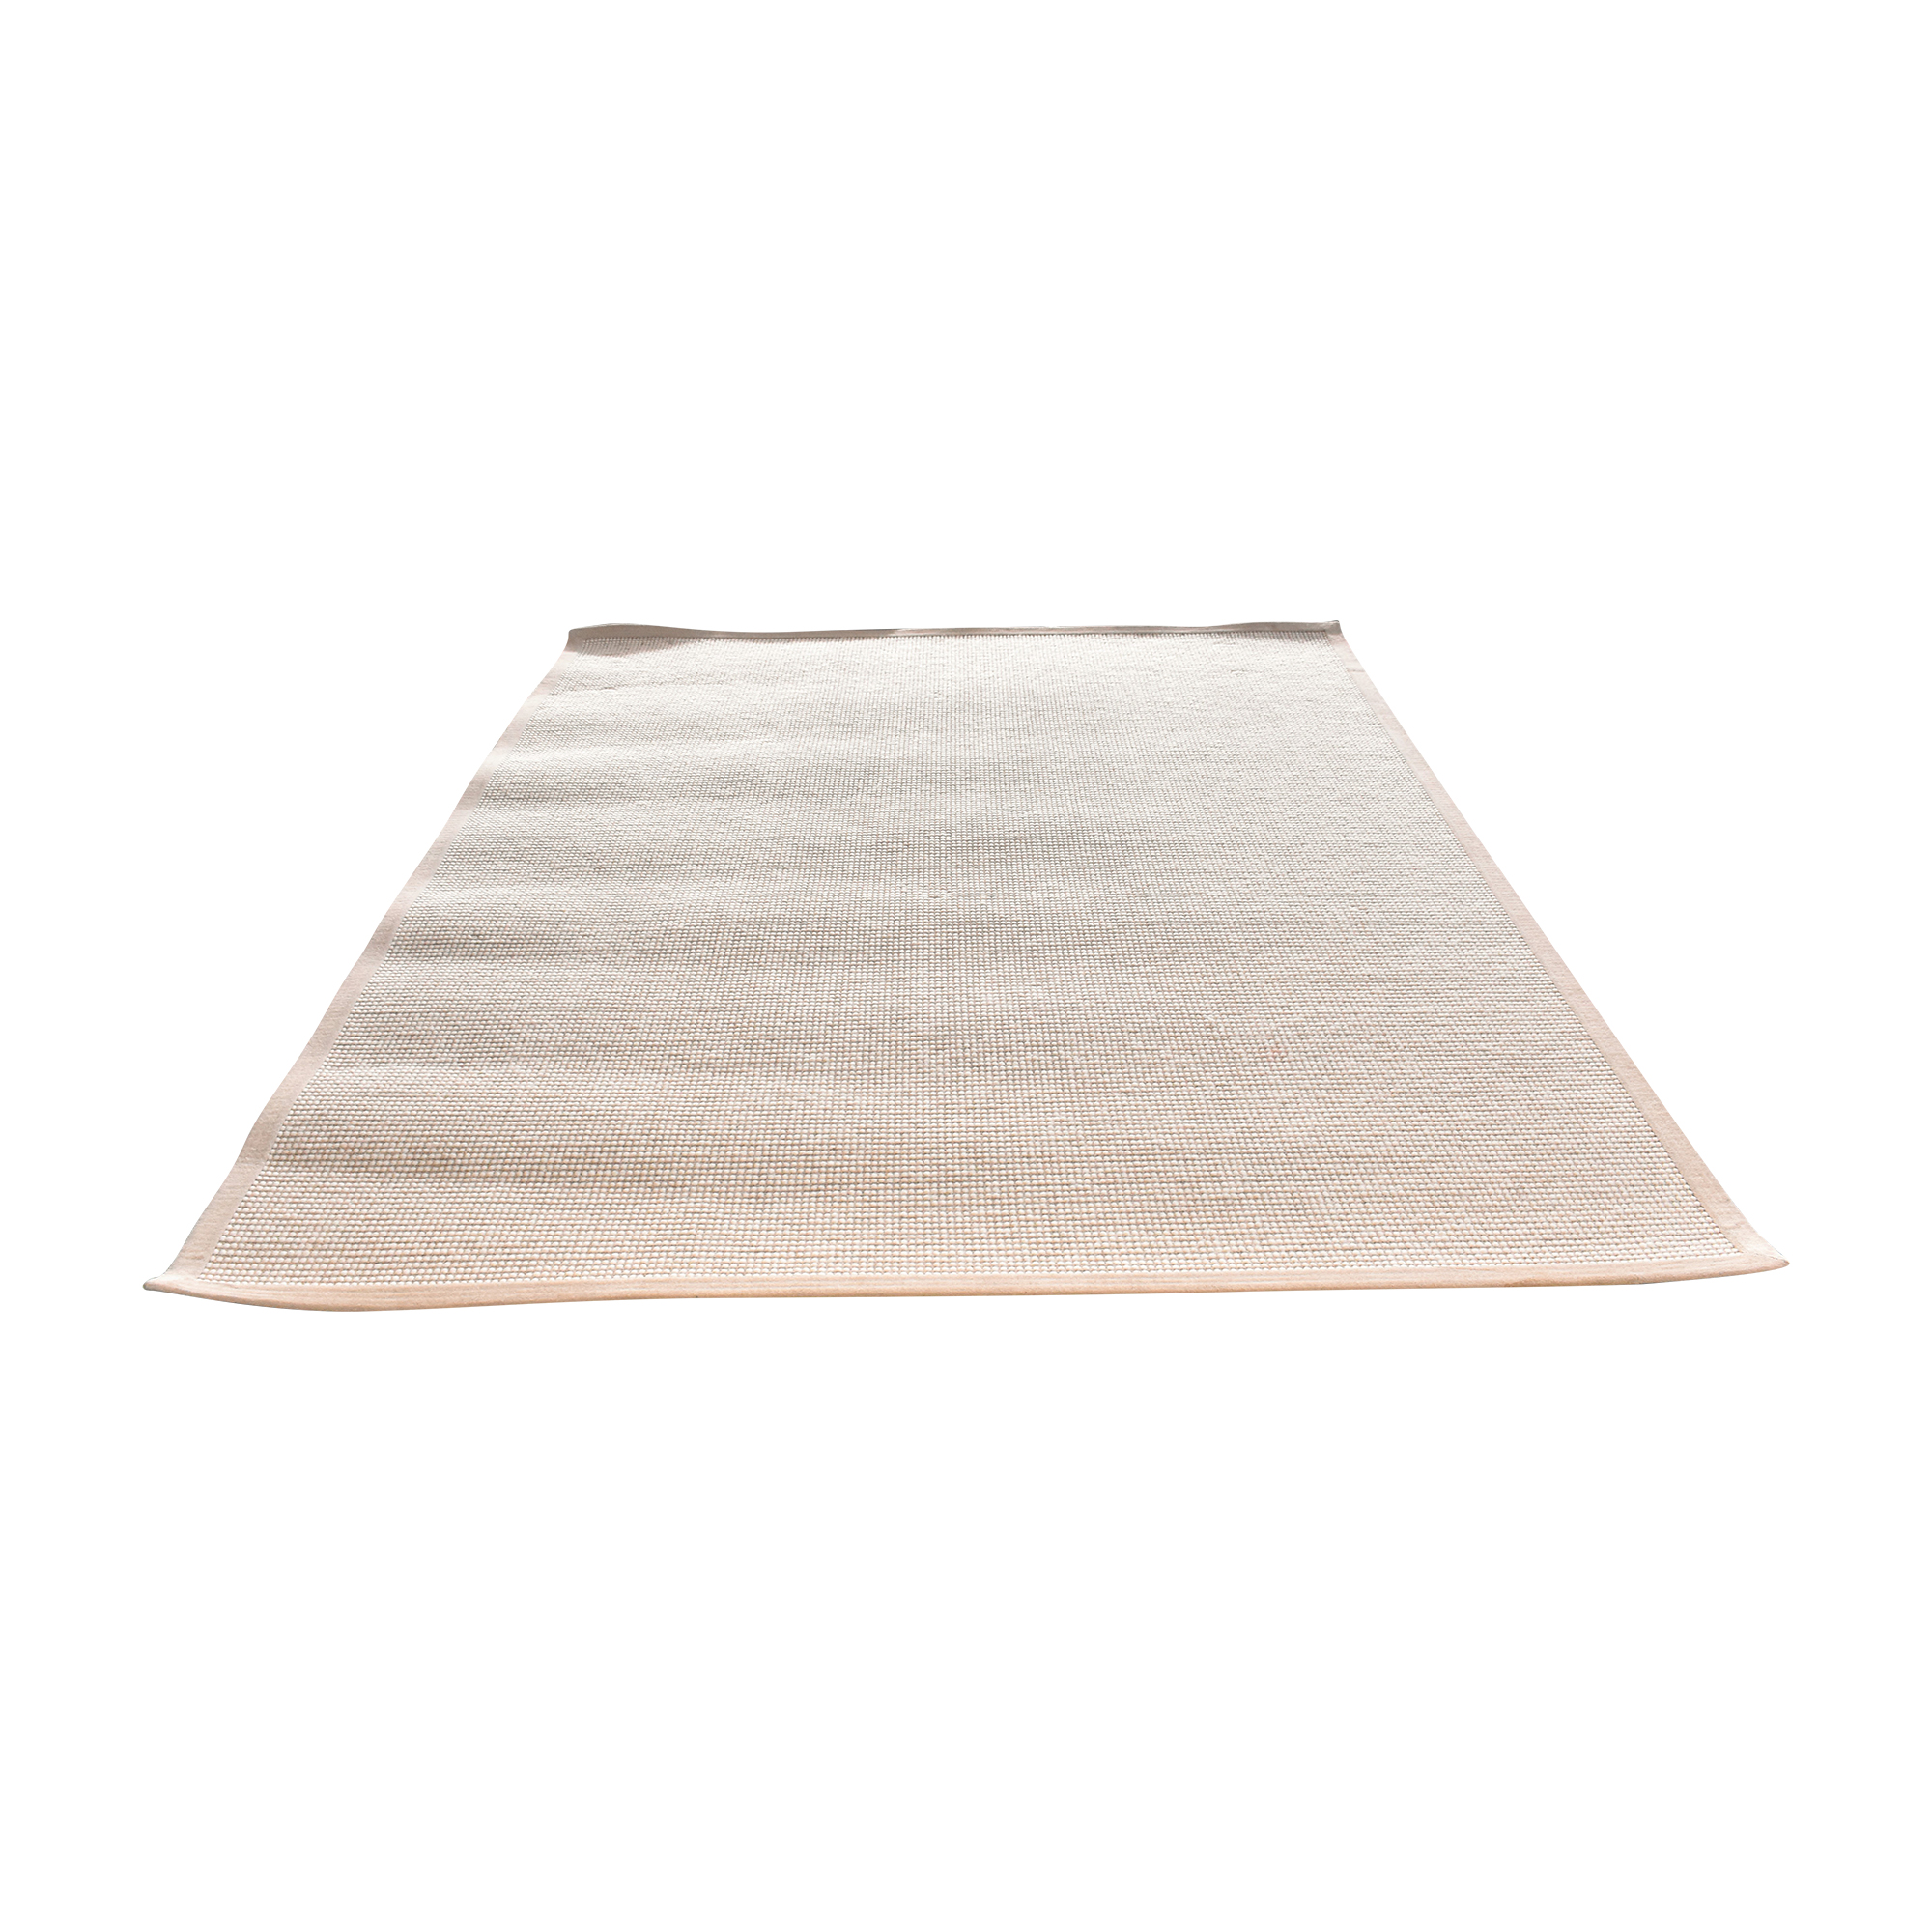 buy Restoration Hardware Restoration Hardware Beige and White Area Rug online